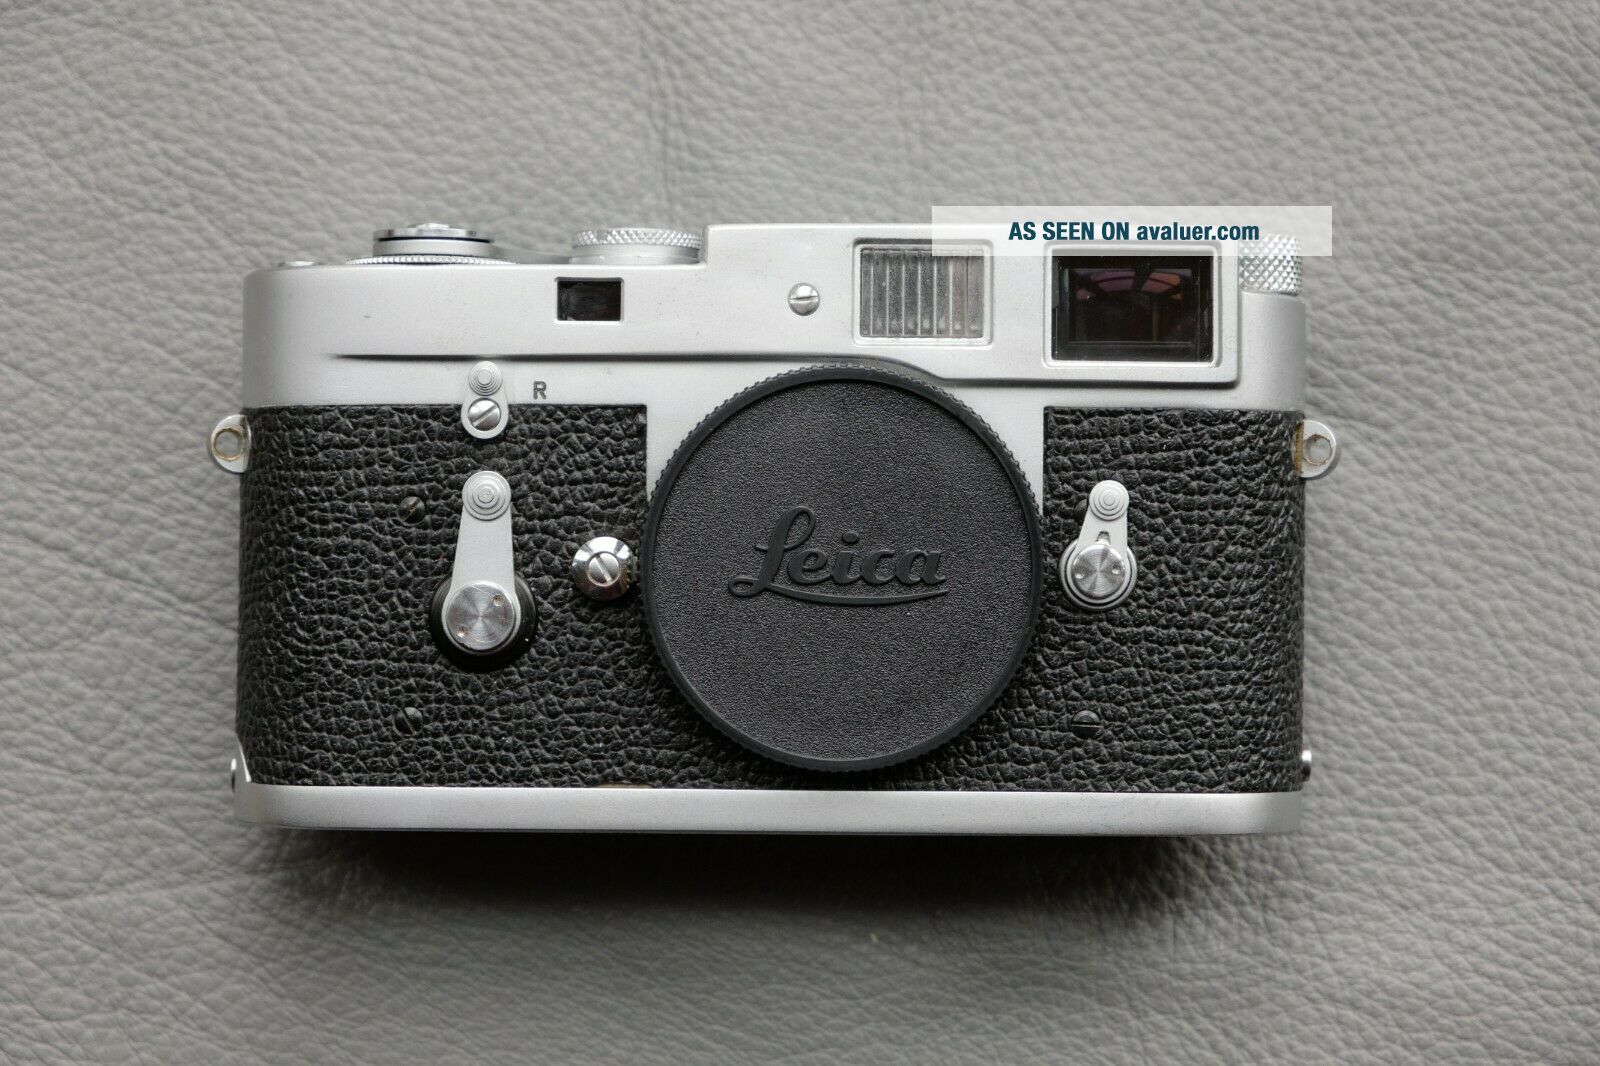 Leica M2 - R (M2 with M4 rapid load) rangefinder camera - rare CLA ' d and